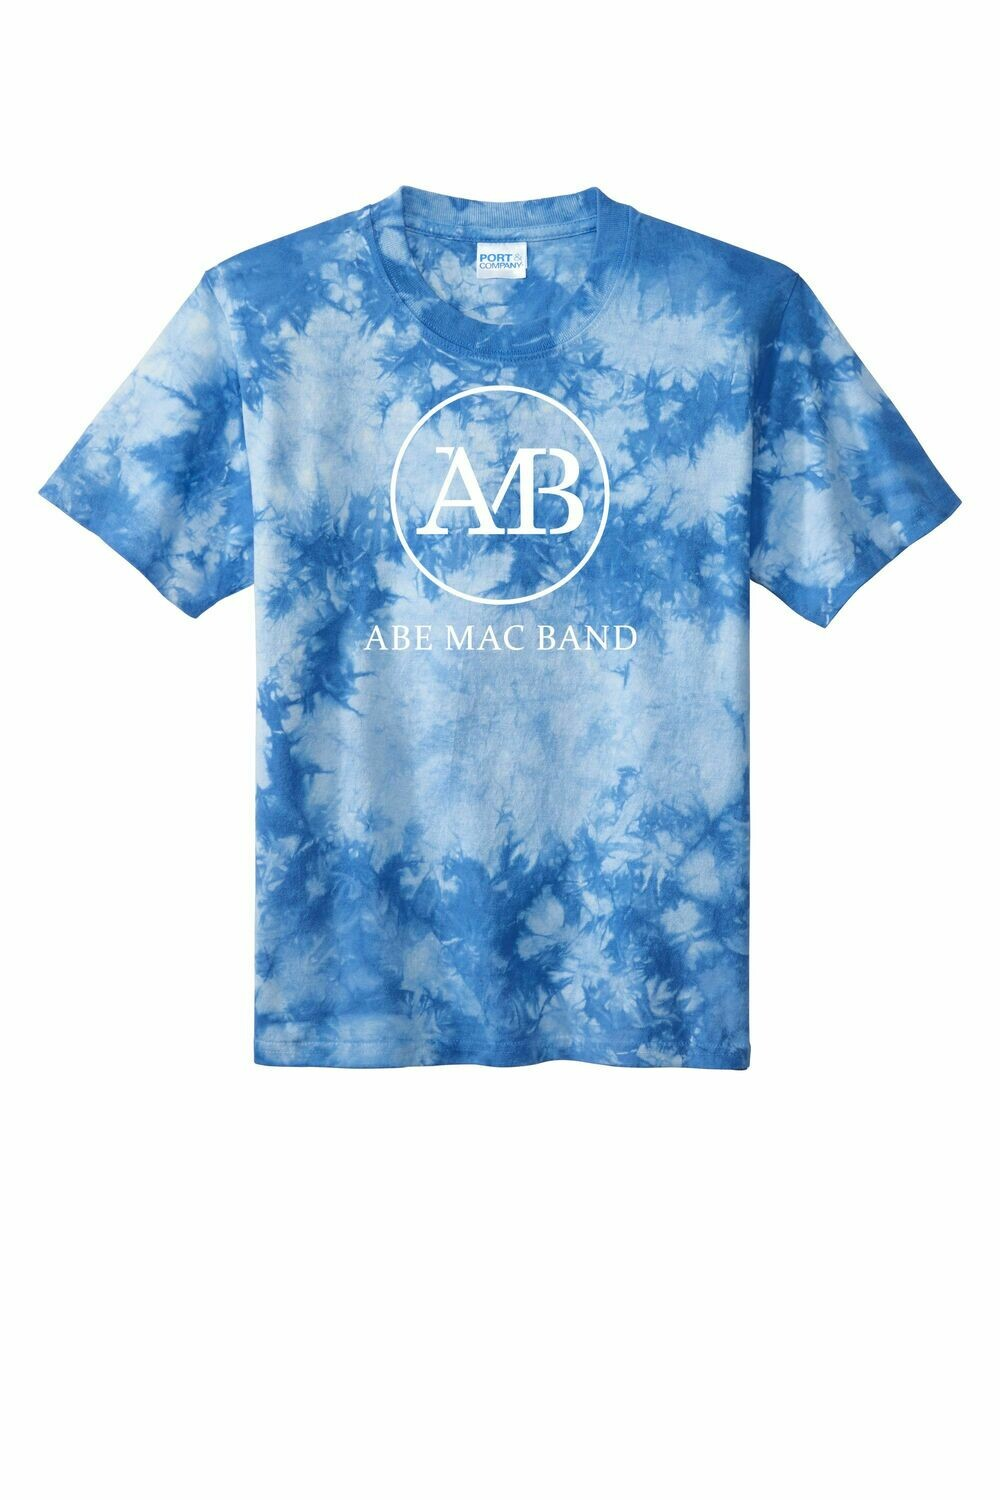 NEW! AMB  Youth Tie Dye Tee